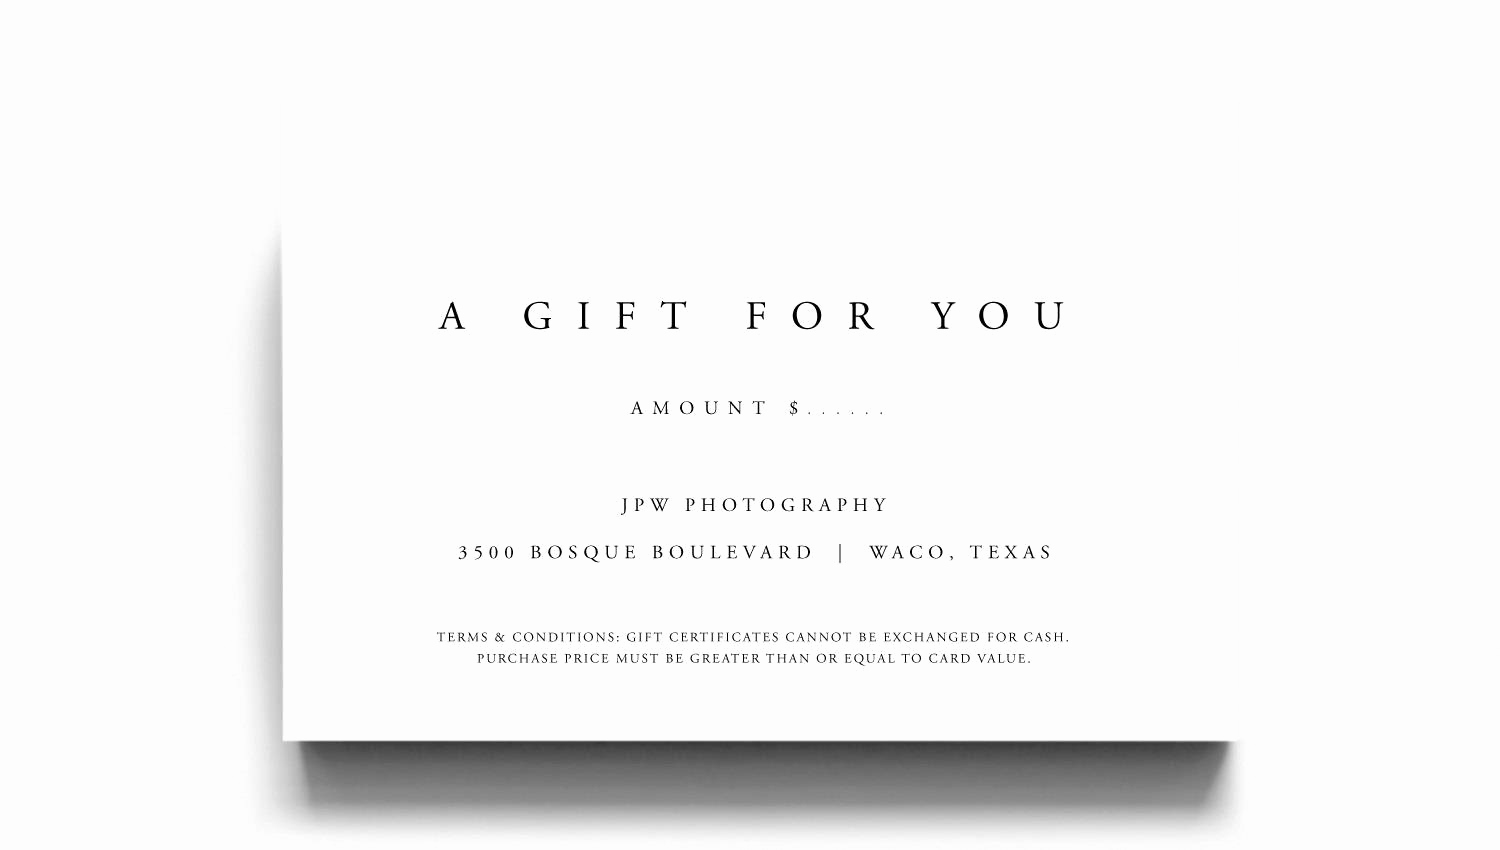 Template for Gift Certificate Inspirational Gift Certificate Template A Gift for You Gift Voucher